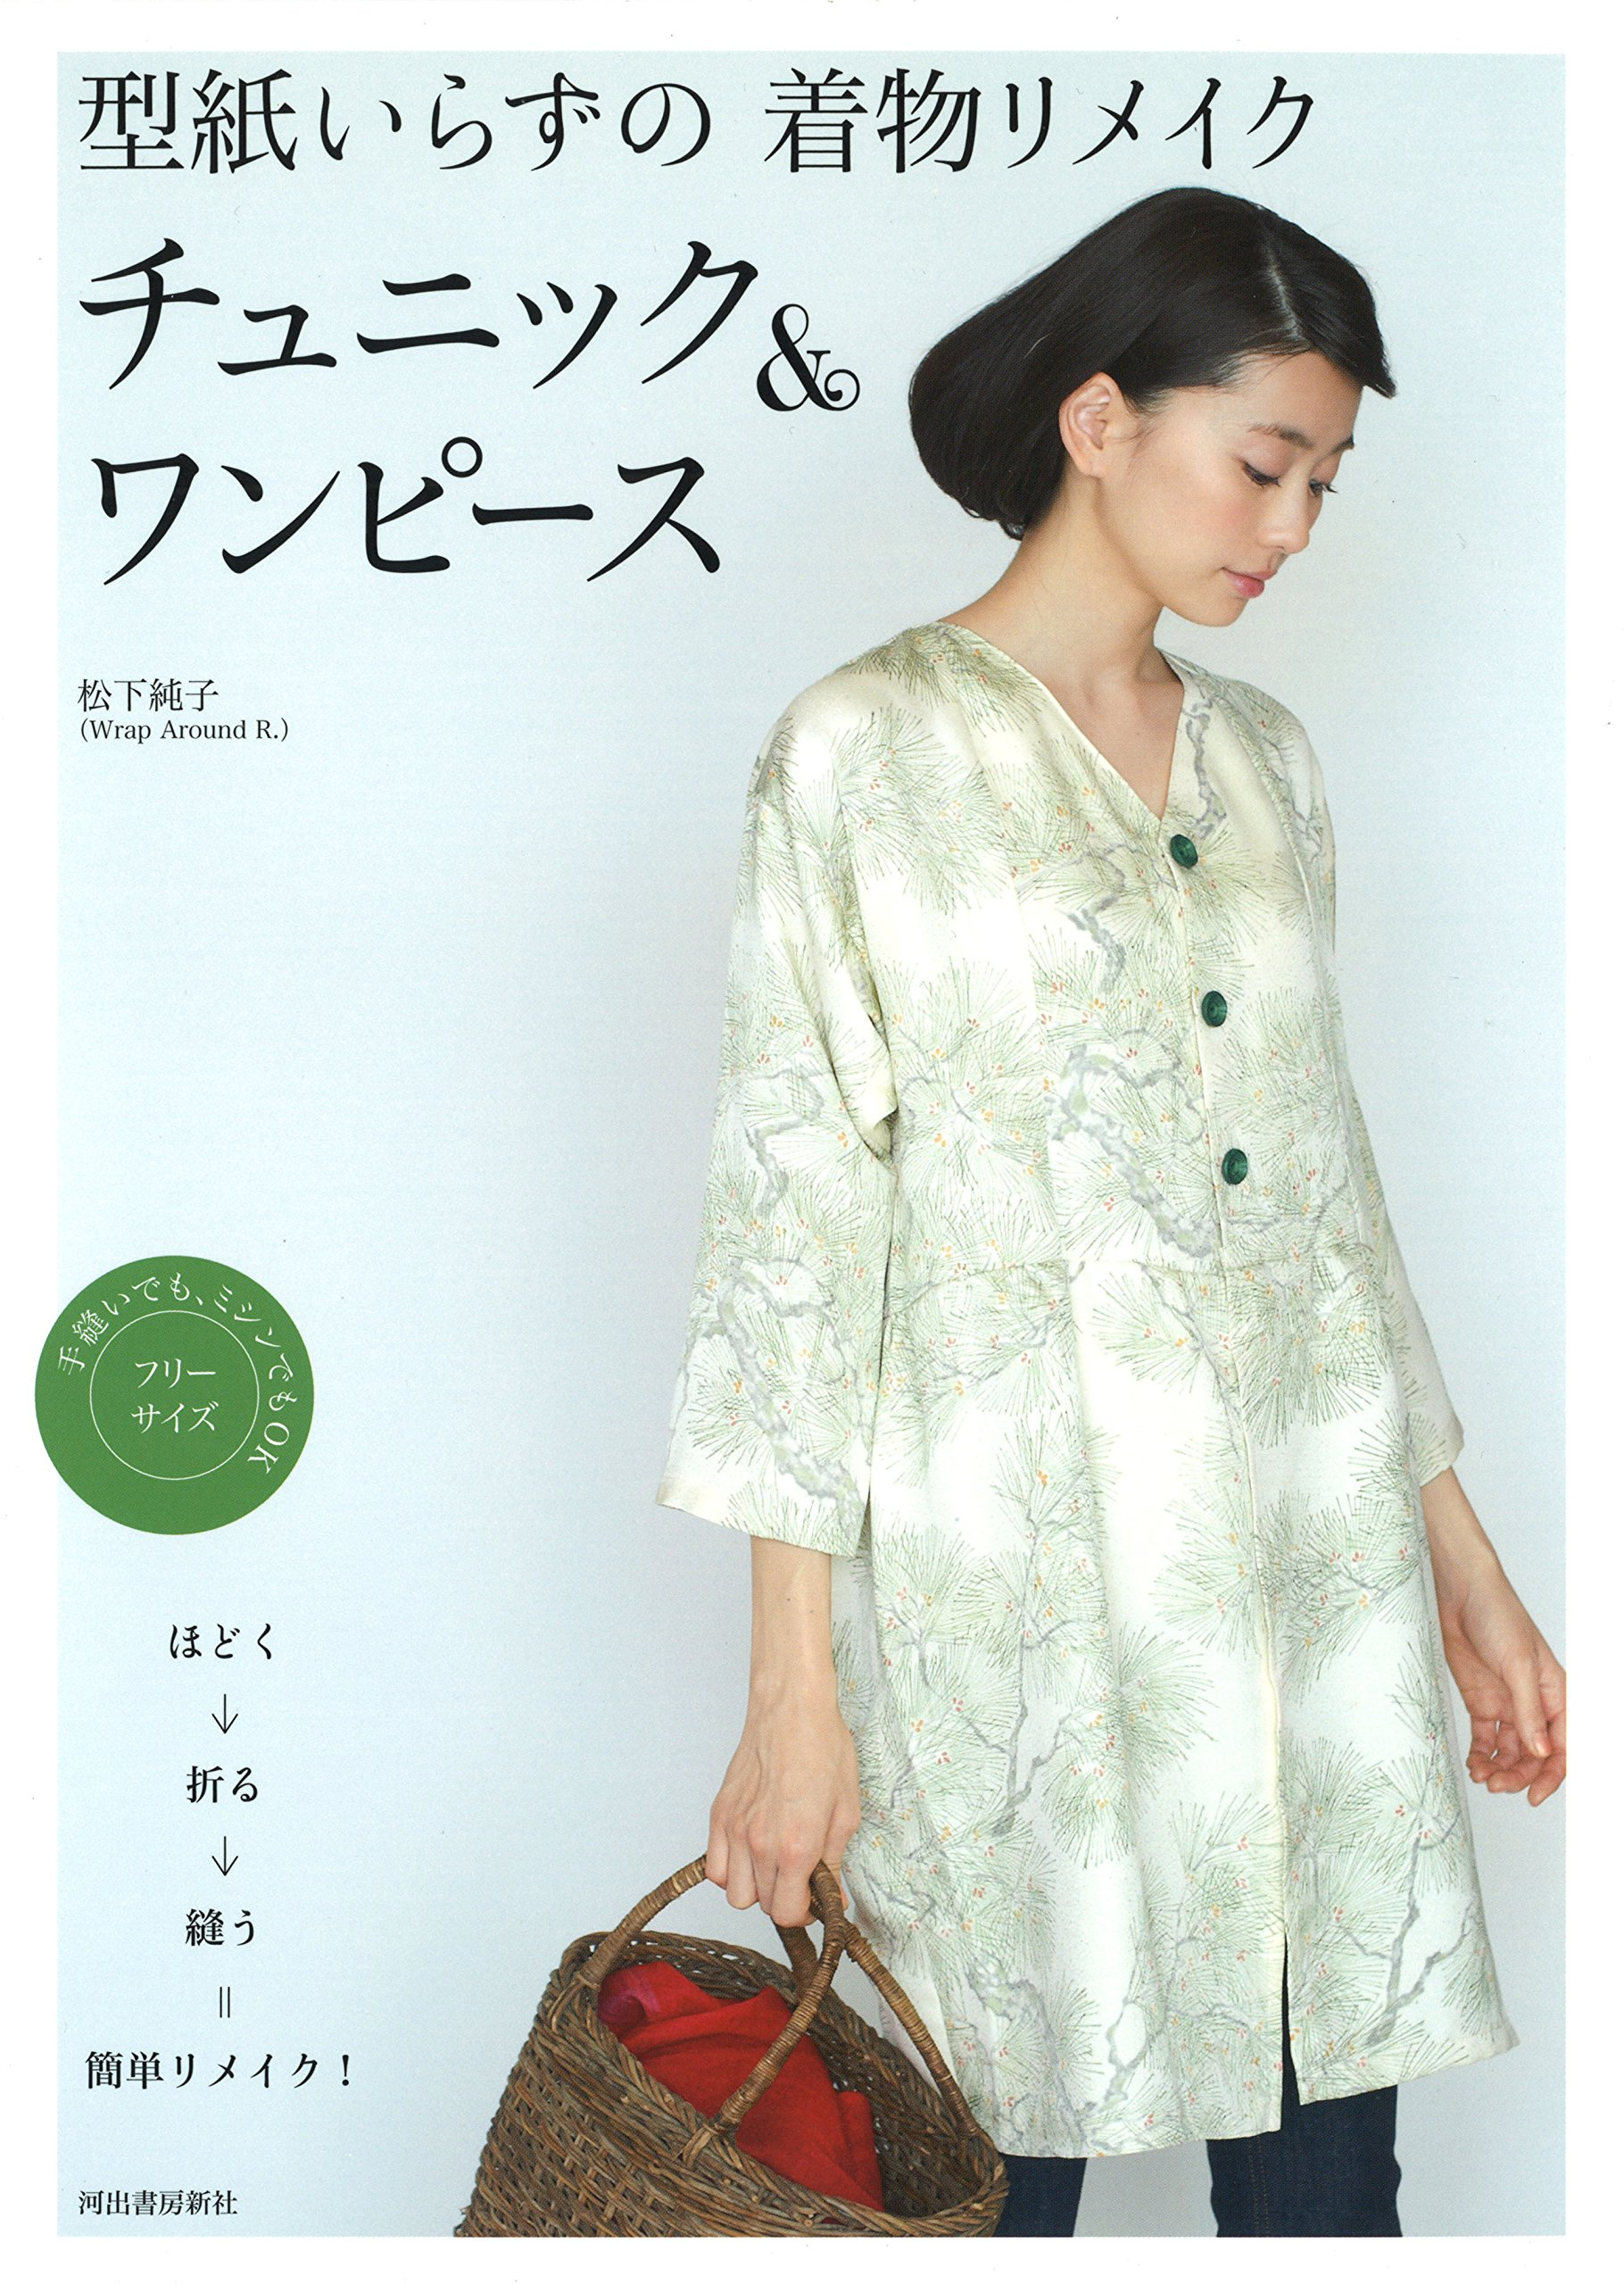 Paper need not of the kimono remake tunic & dress: simple remake!